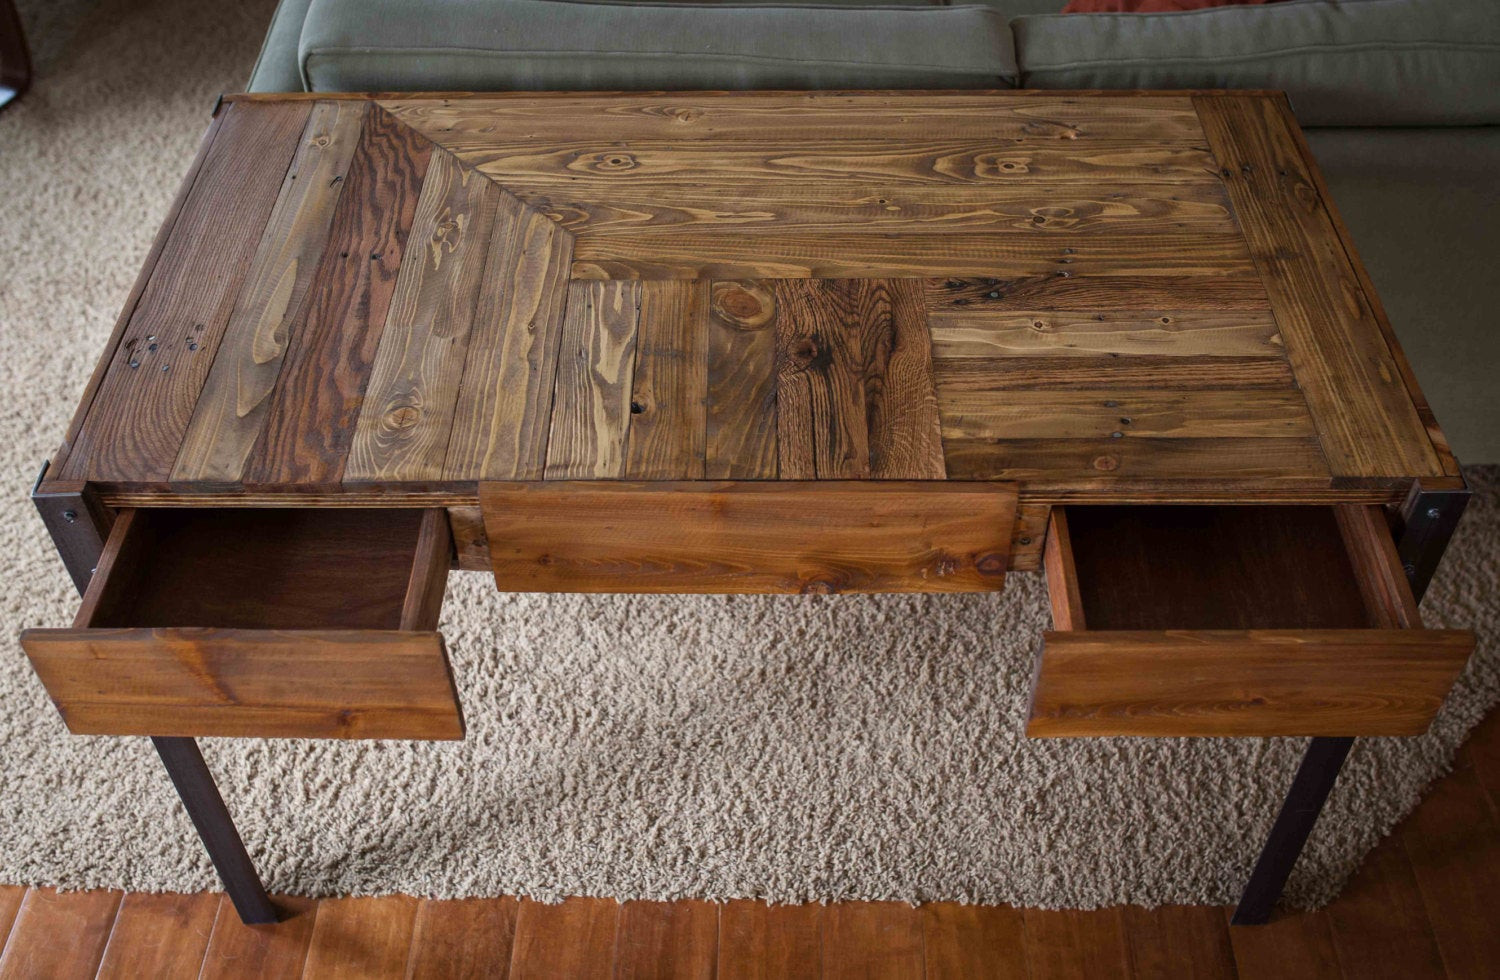 Best ideas about Wood Desk DIY . Save or Pin Pallet Wood Desk with Metal Legs and Two Drawers Now.